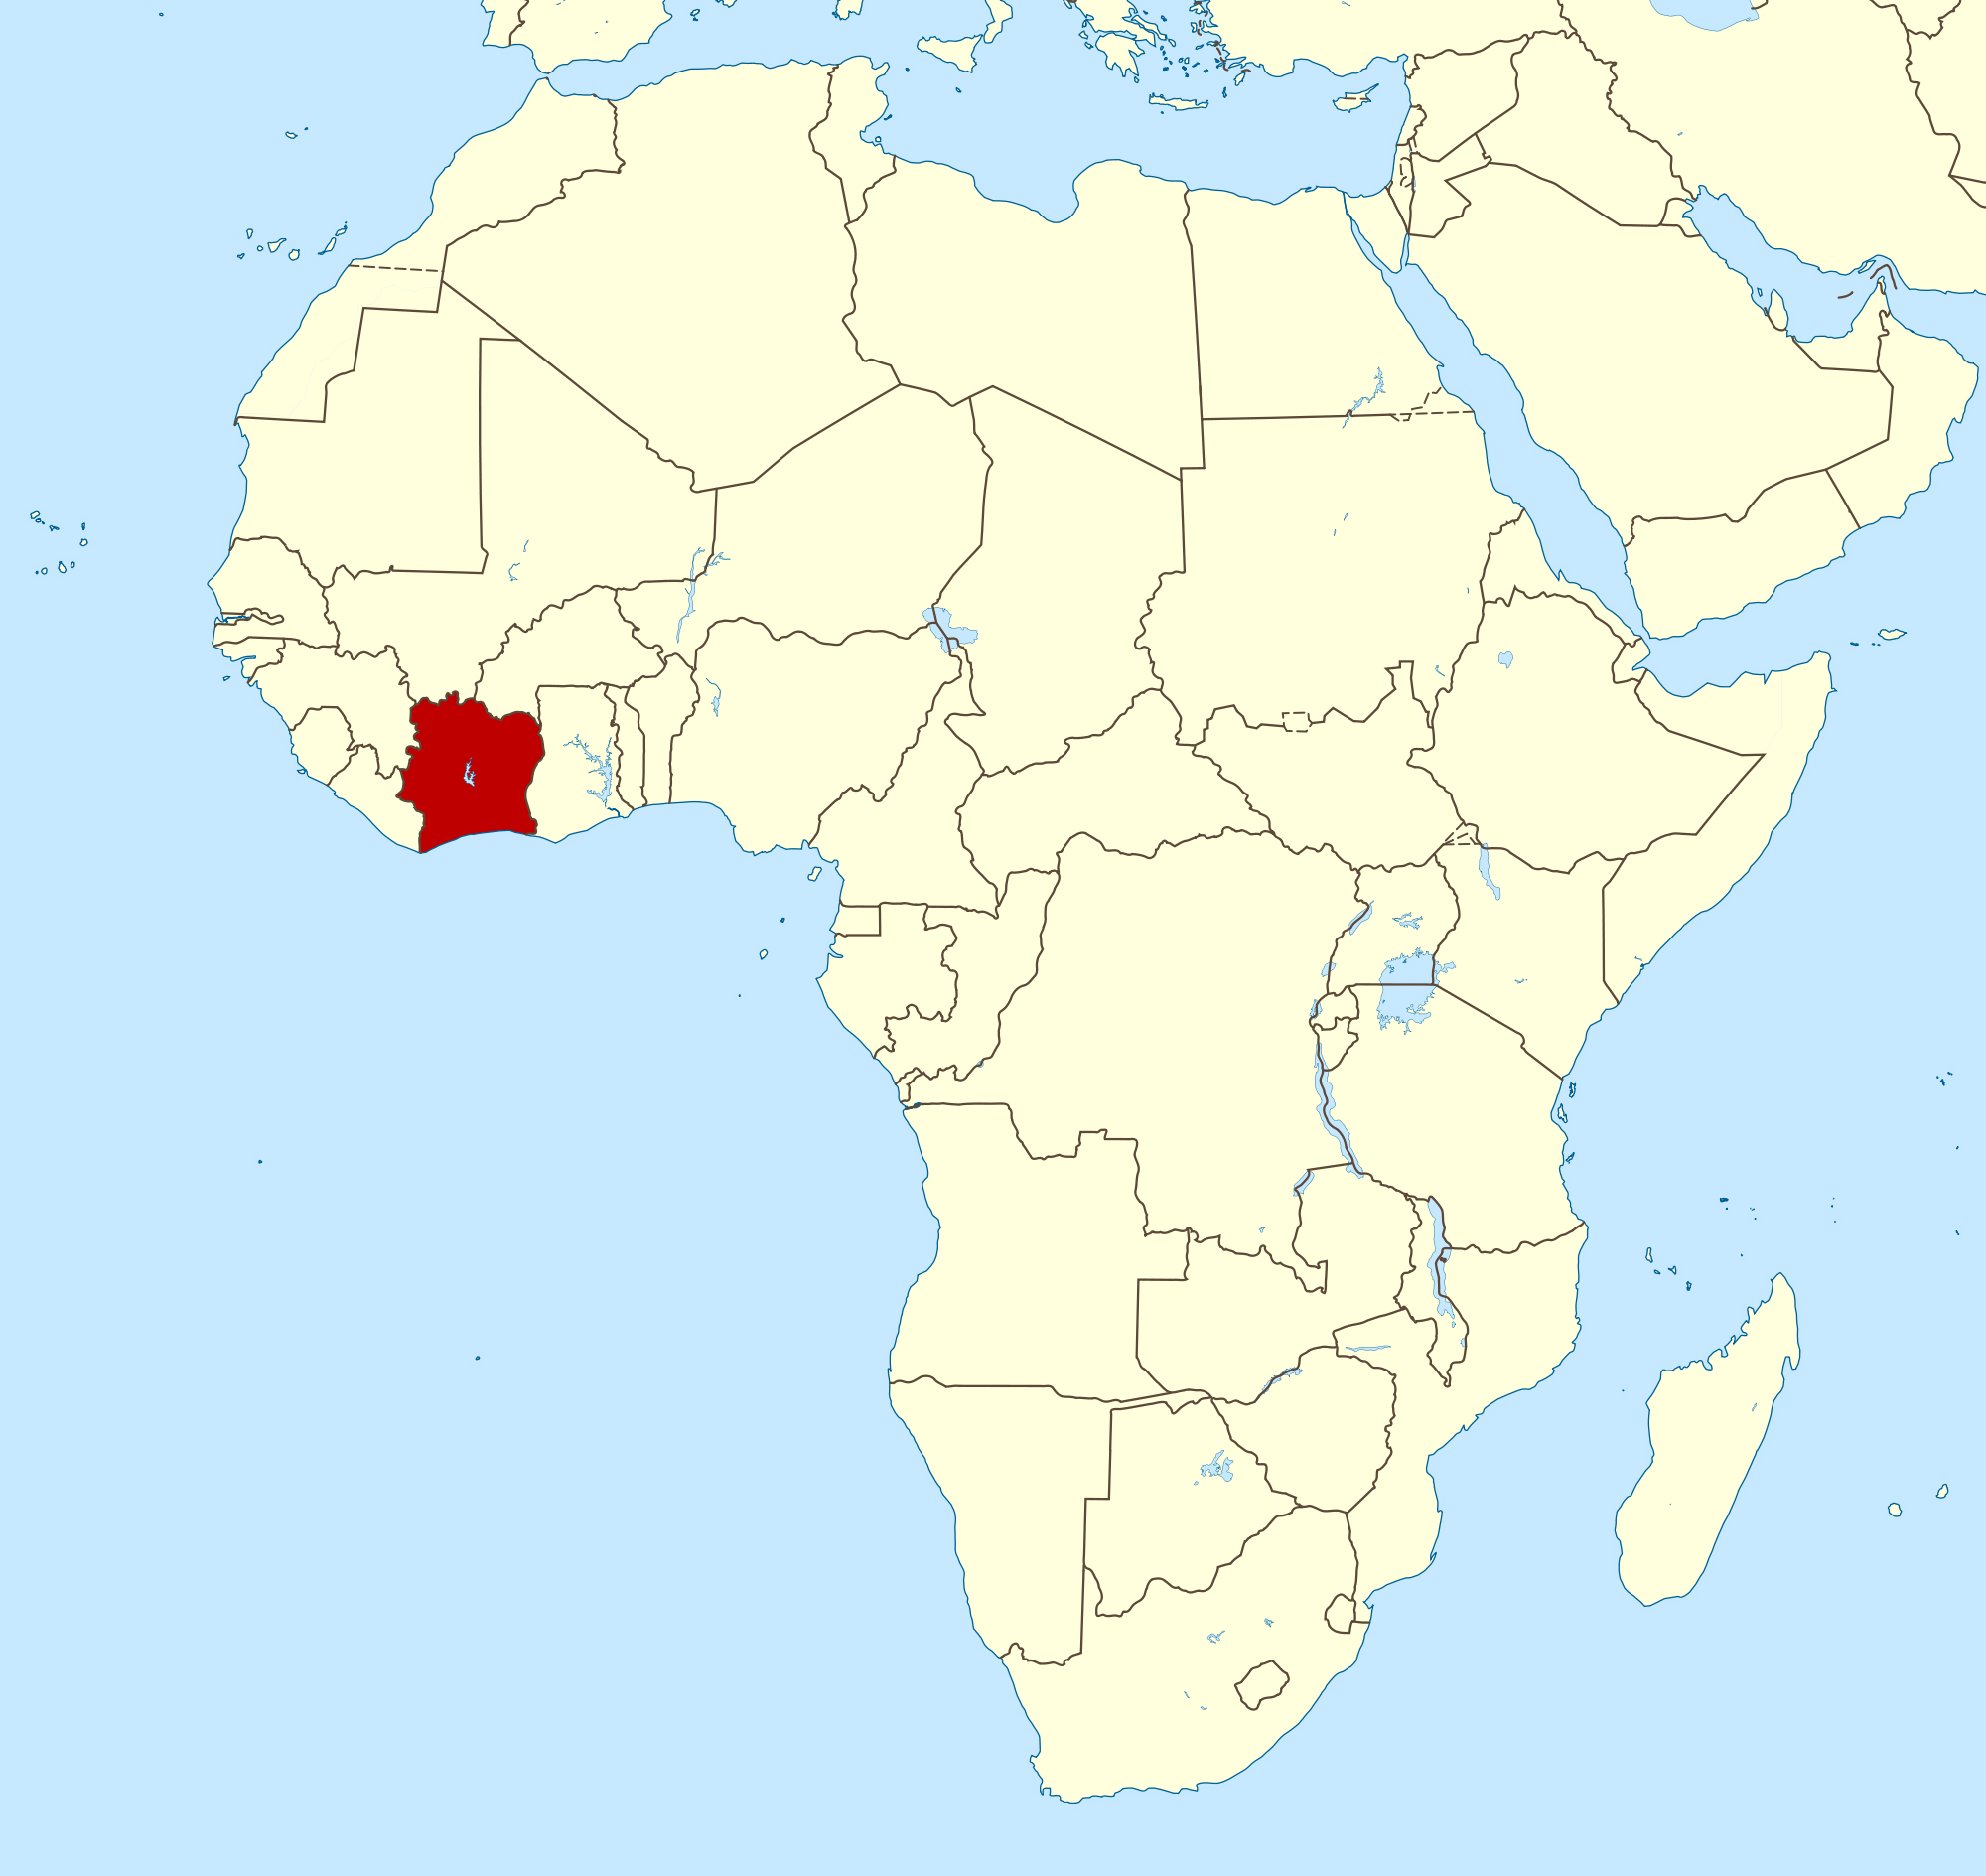 large-location-map-of-cote-d-ivoire-in-africa.jpg